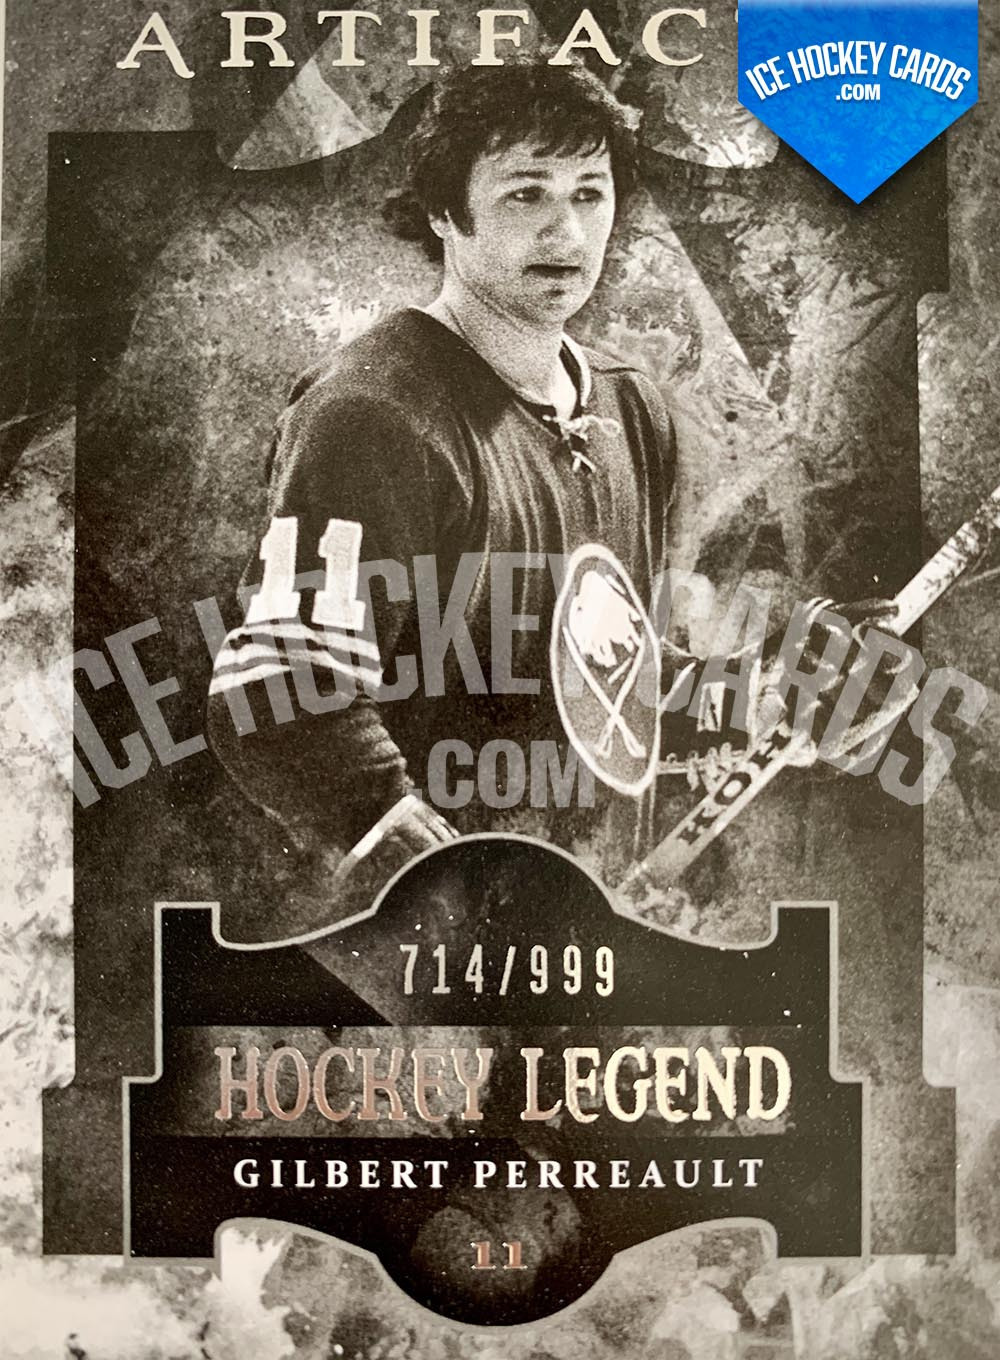 Upper Deck - Artifacts 2011-12 - Gilbert Perreault Hockey Legend